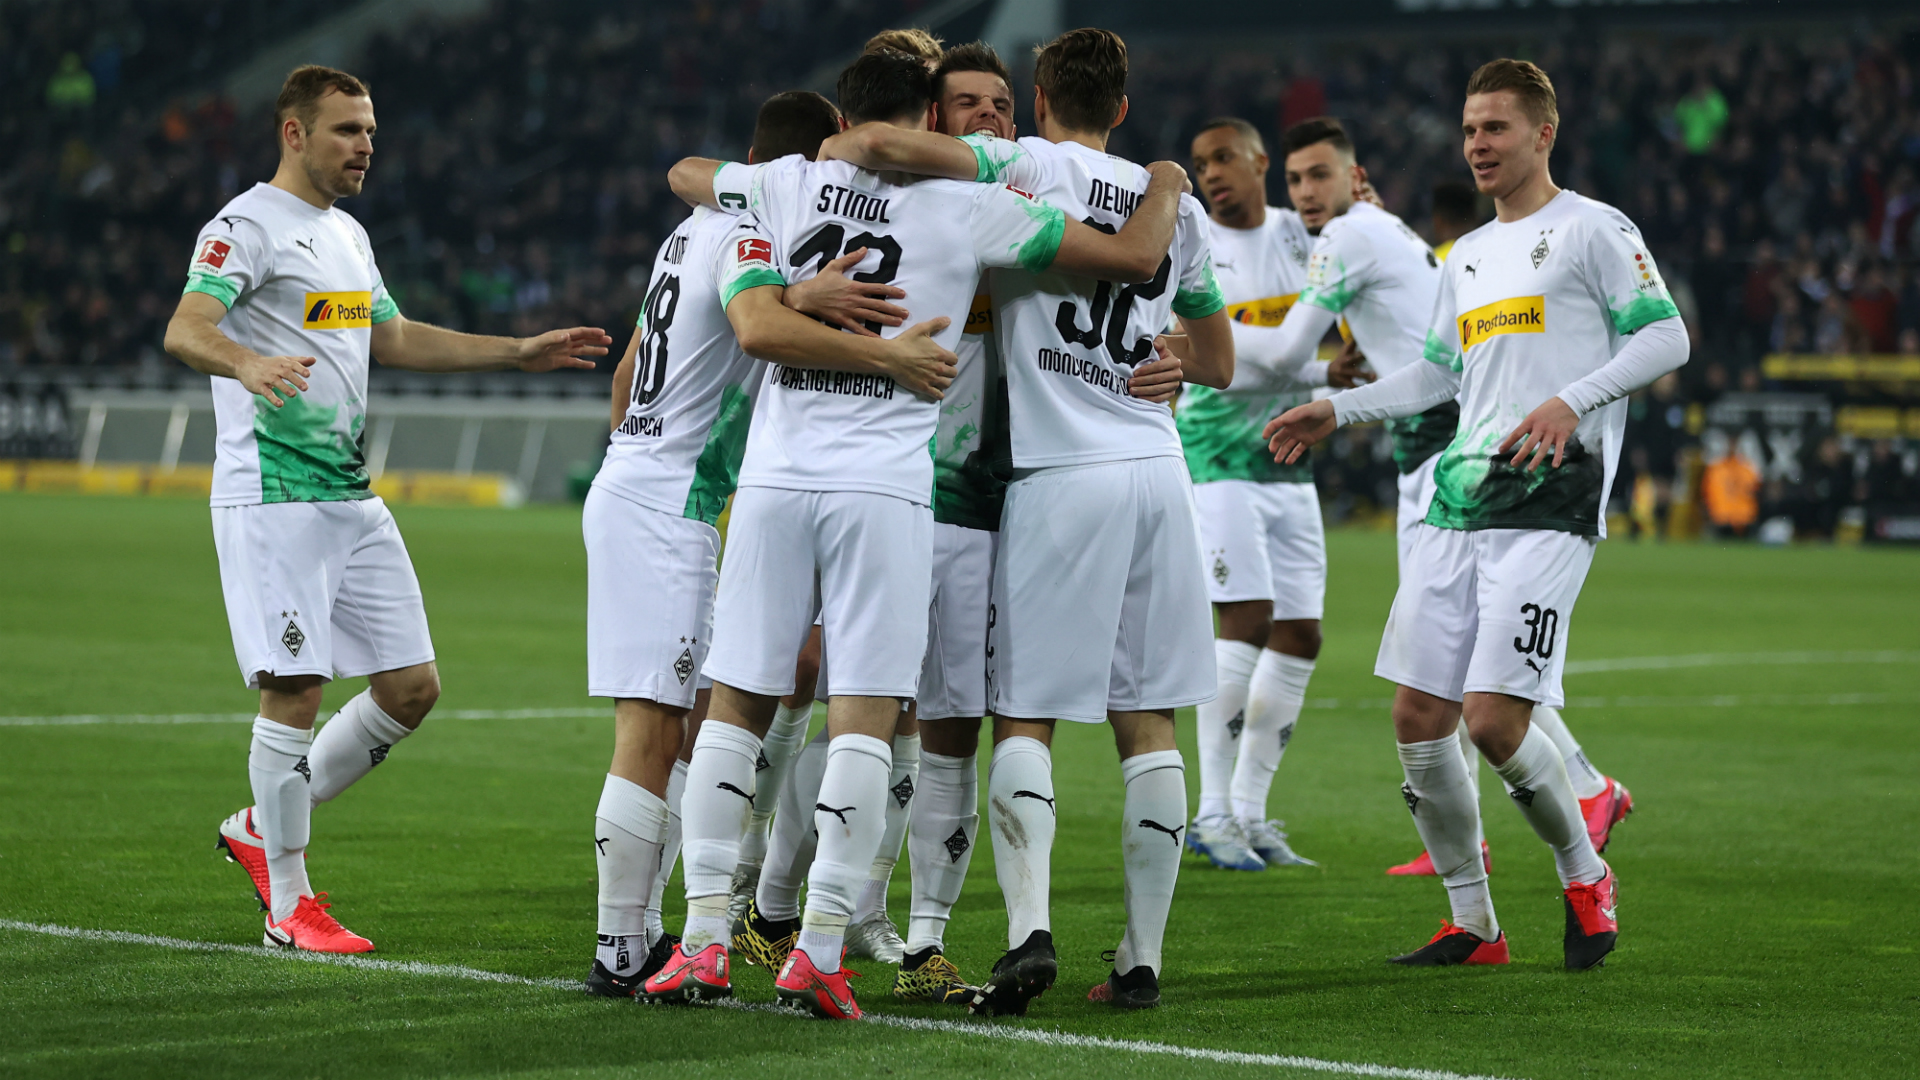 Coronavirus: Gladbach v Cologne latest clash behind closed doors, Neville speaks out